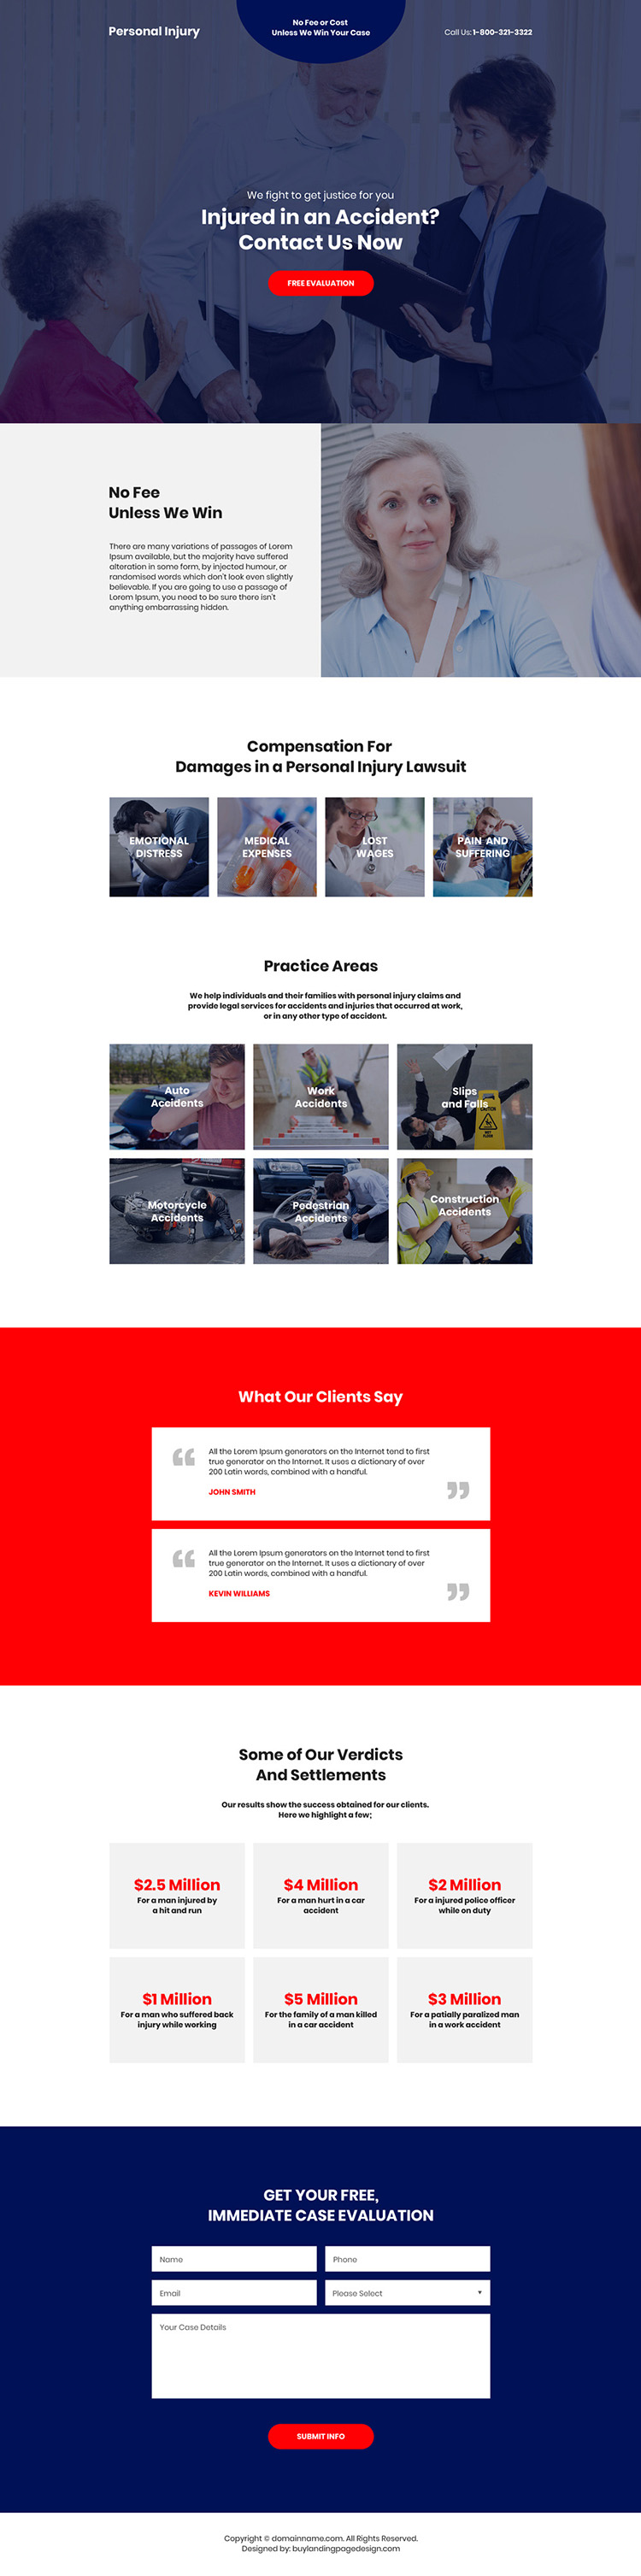 personal injury accidents free evaluation responsive landing page